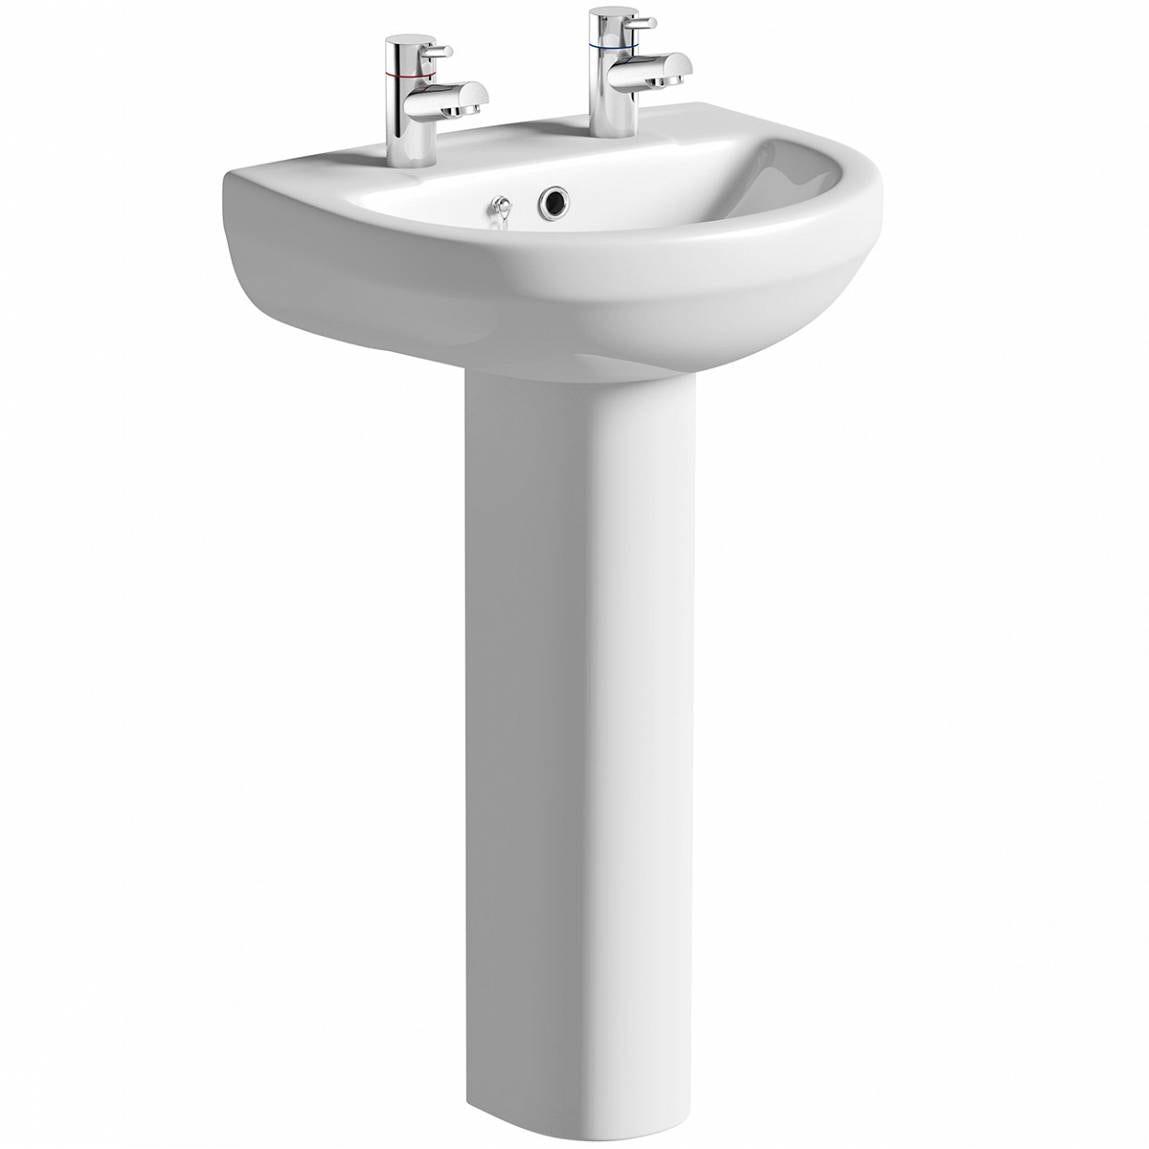 Orchard Eden 2 tap hole full pedestal basin 500mm